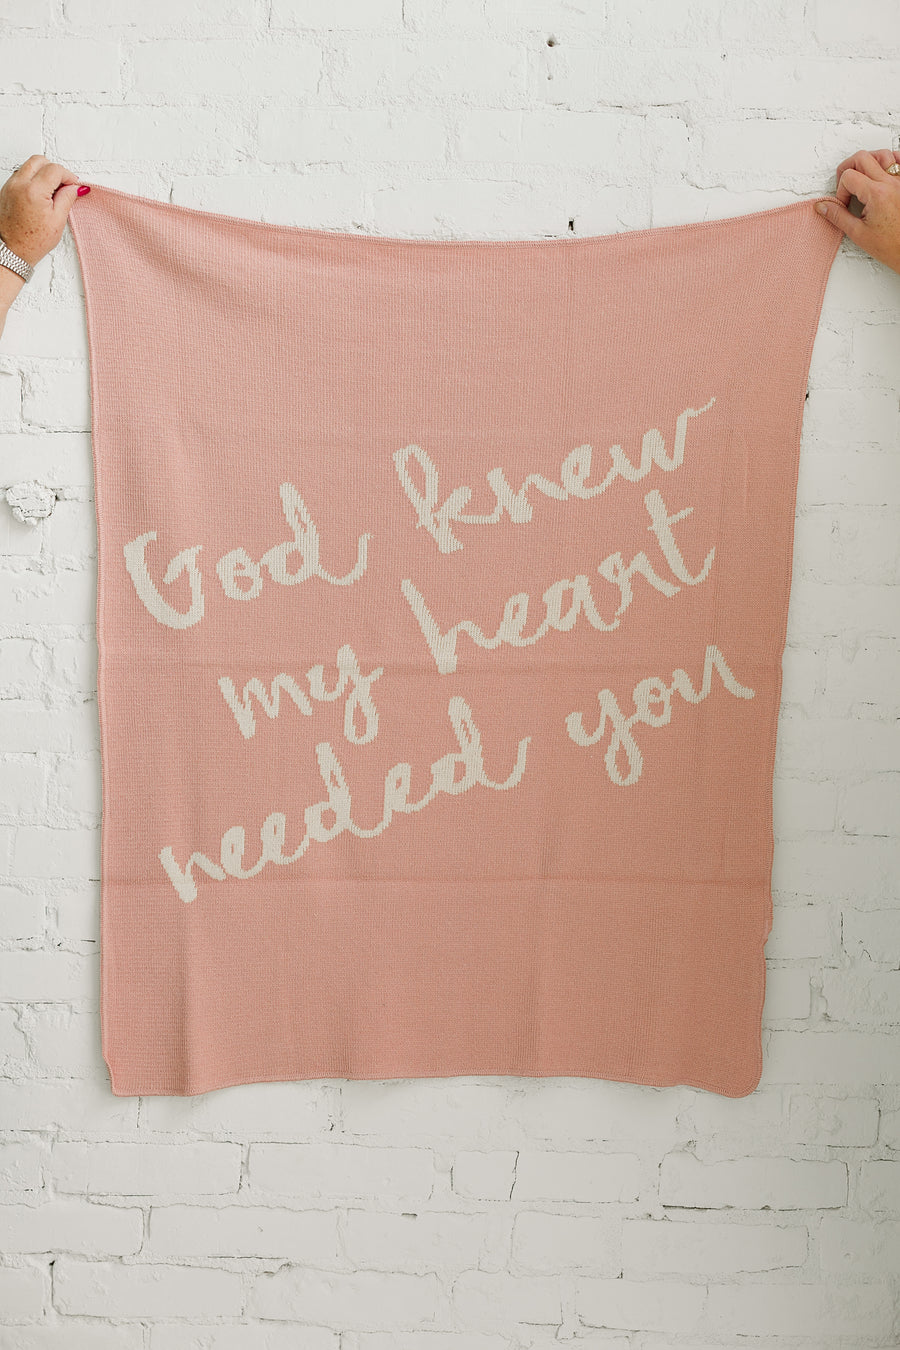 *NEW* Made in the USA | Recycled Cotton Blend  God knew my heart needed you Throw Blanket | Cameo Pink